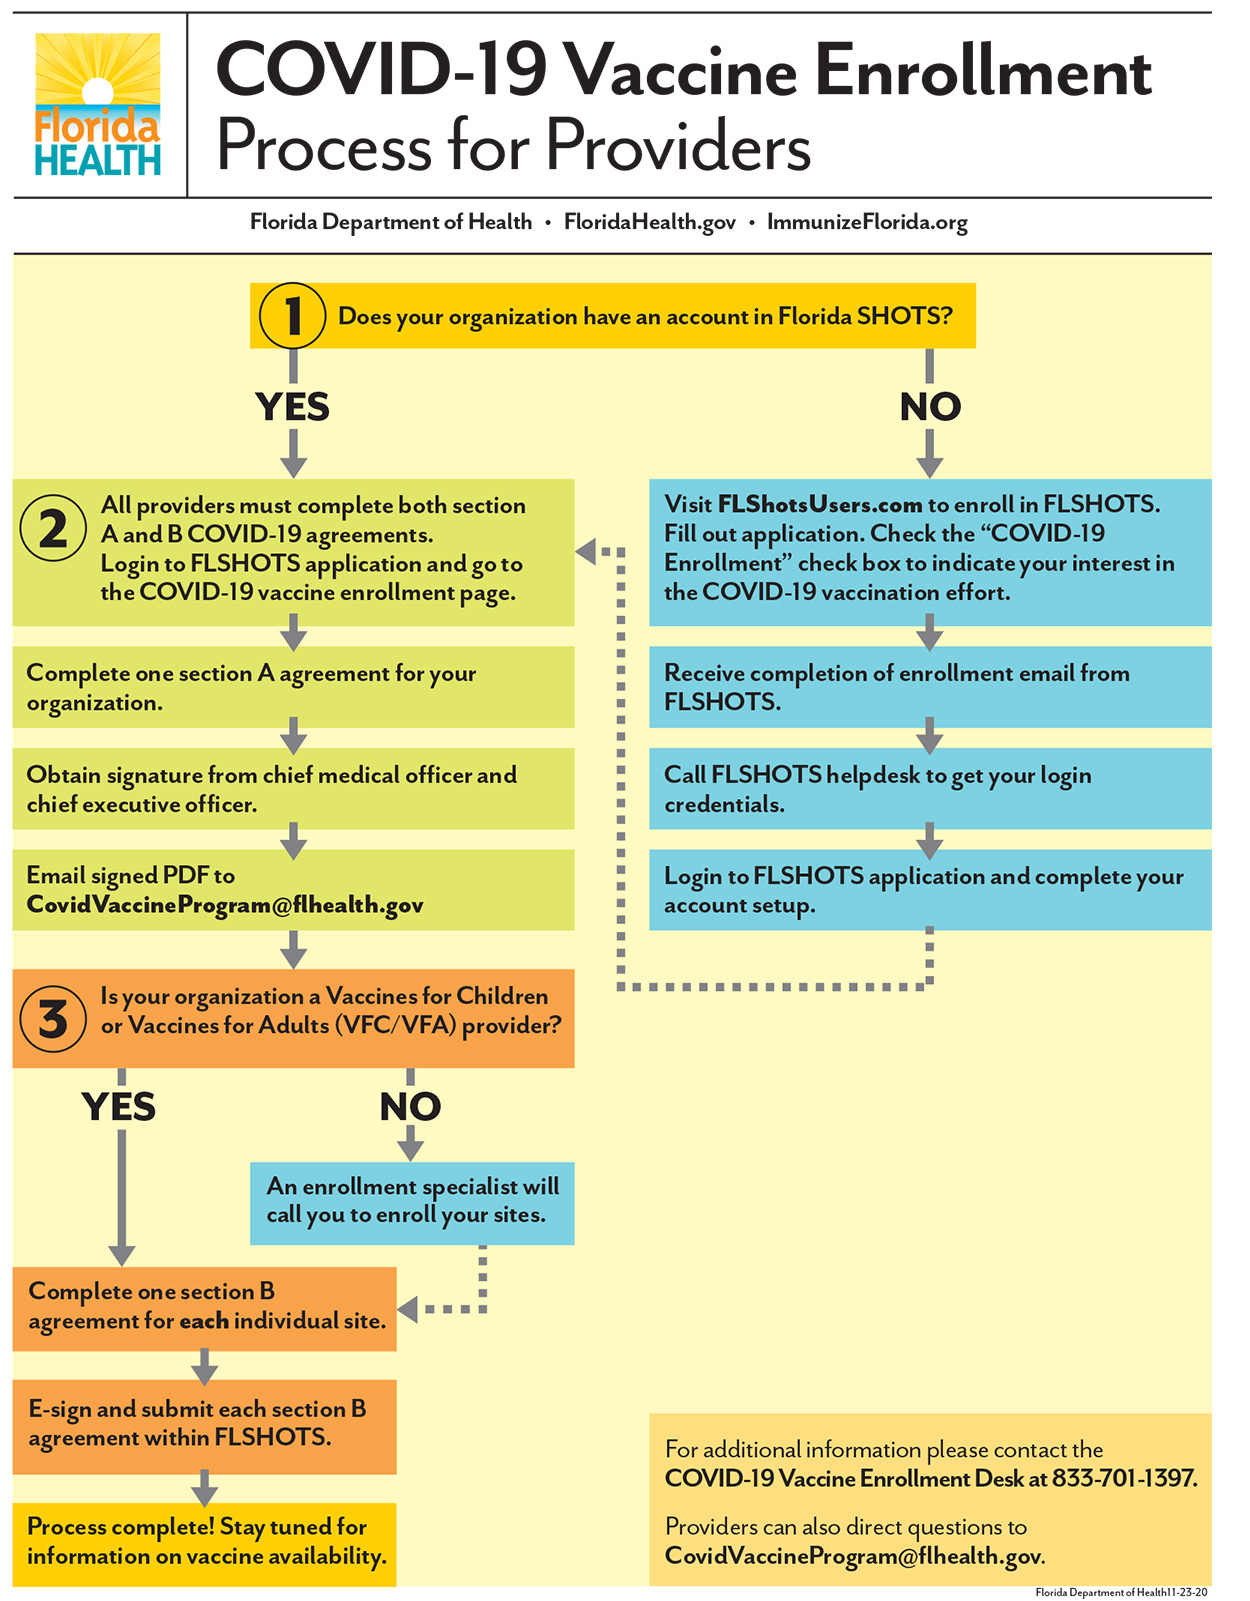 COVID-19 Vaccine Enrollment Process for ProvidersvCOVID-19 Vaccine Enrollment Process for Providers - Flow Chart